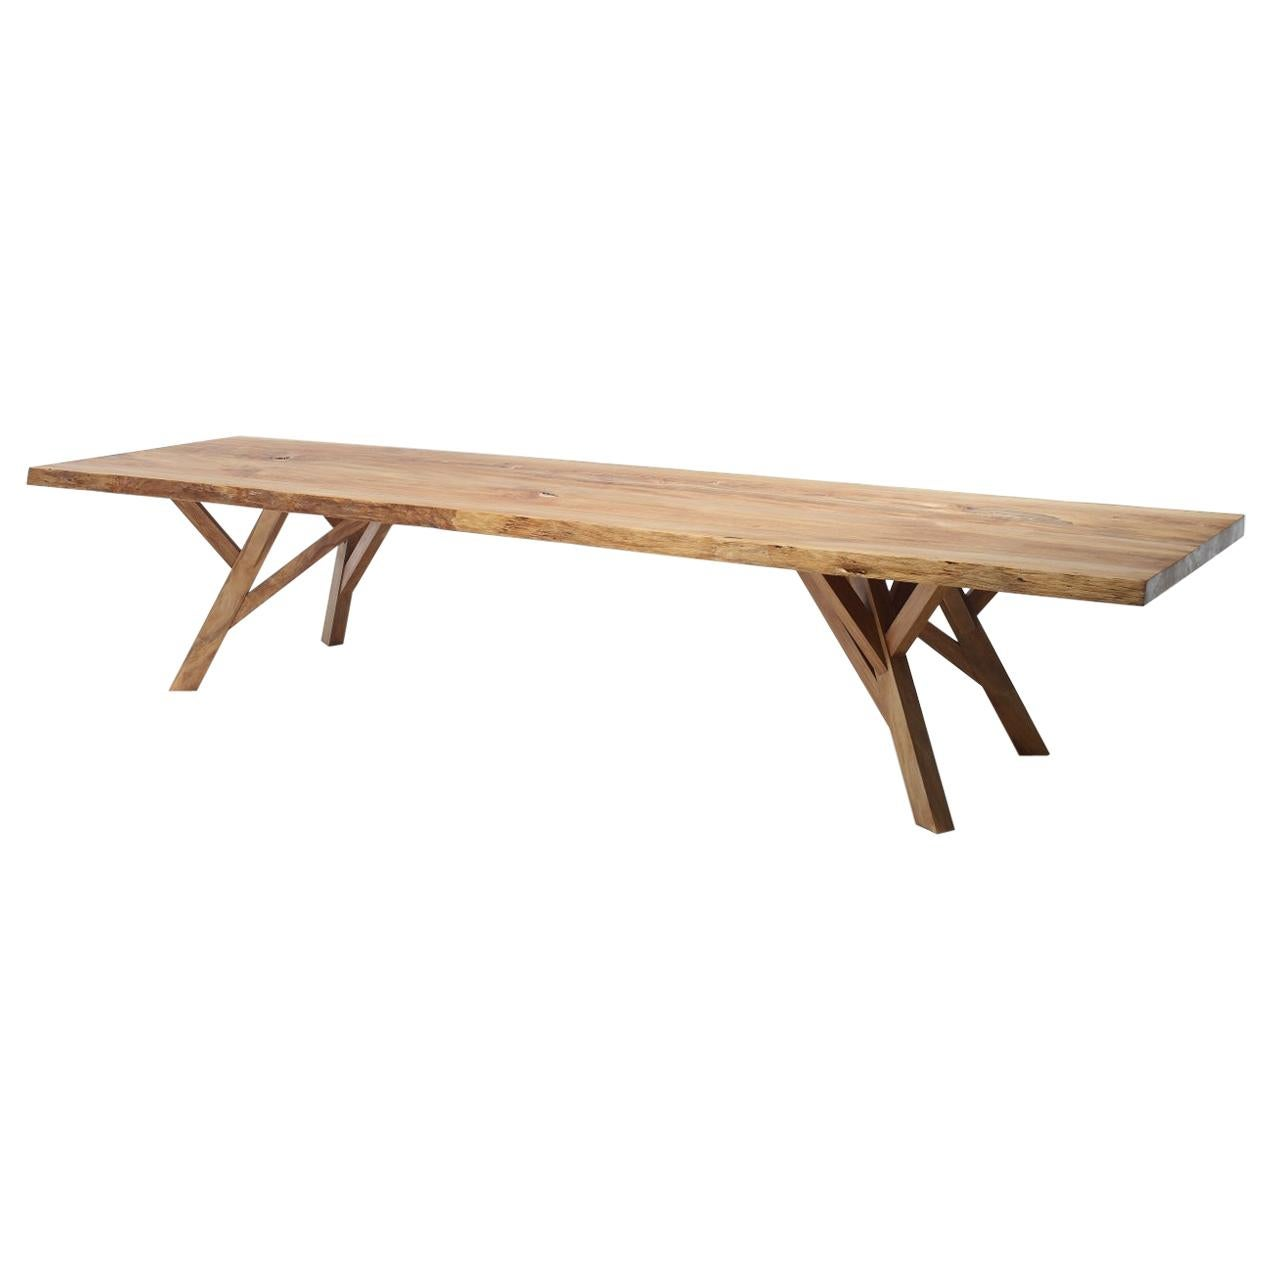 Modern Organic Live Edge Slab Canopy Table Made from Sustainable Ancient Wood